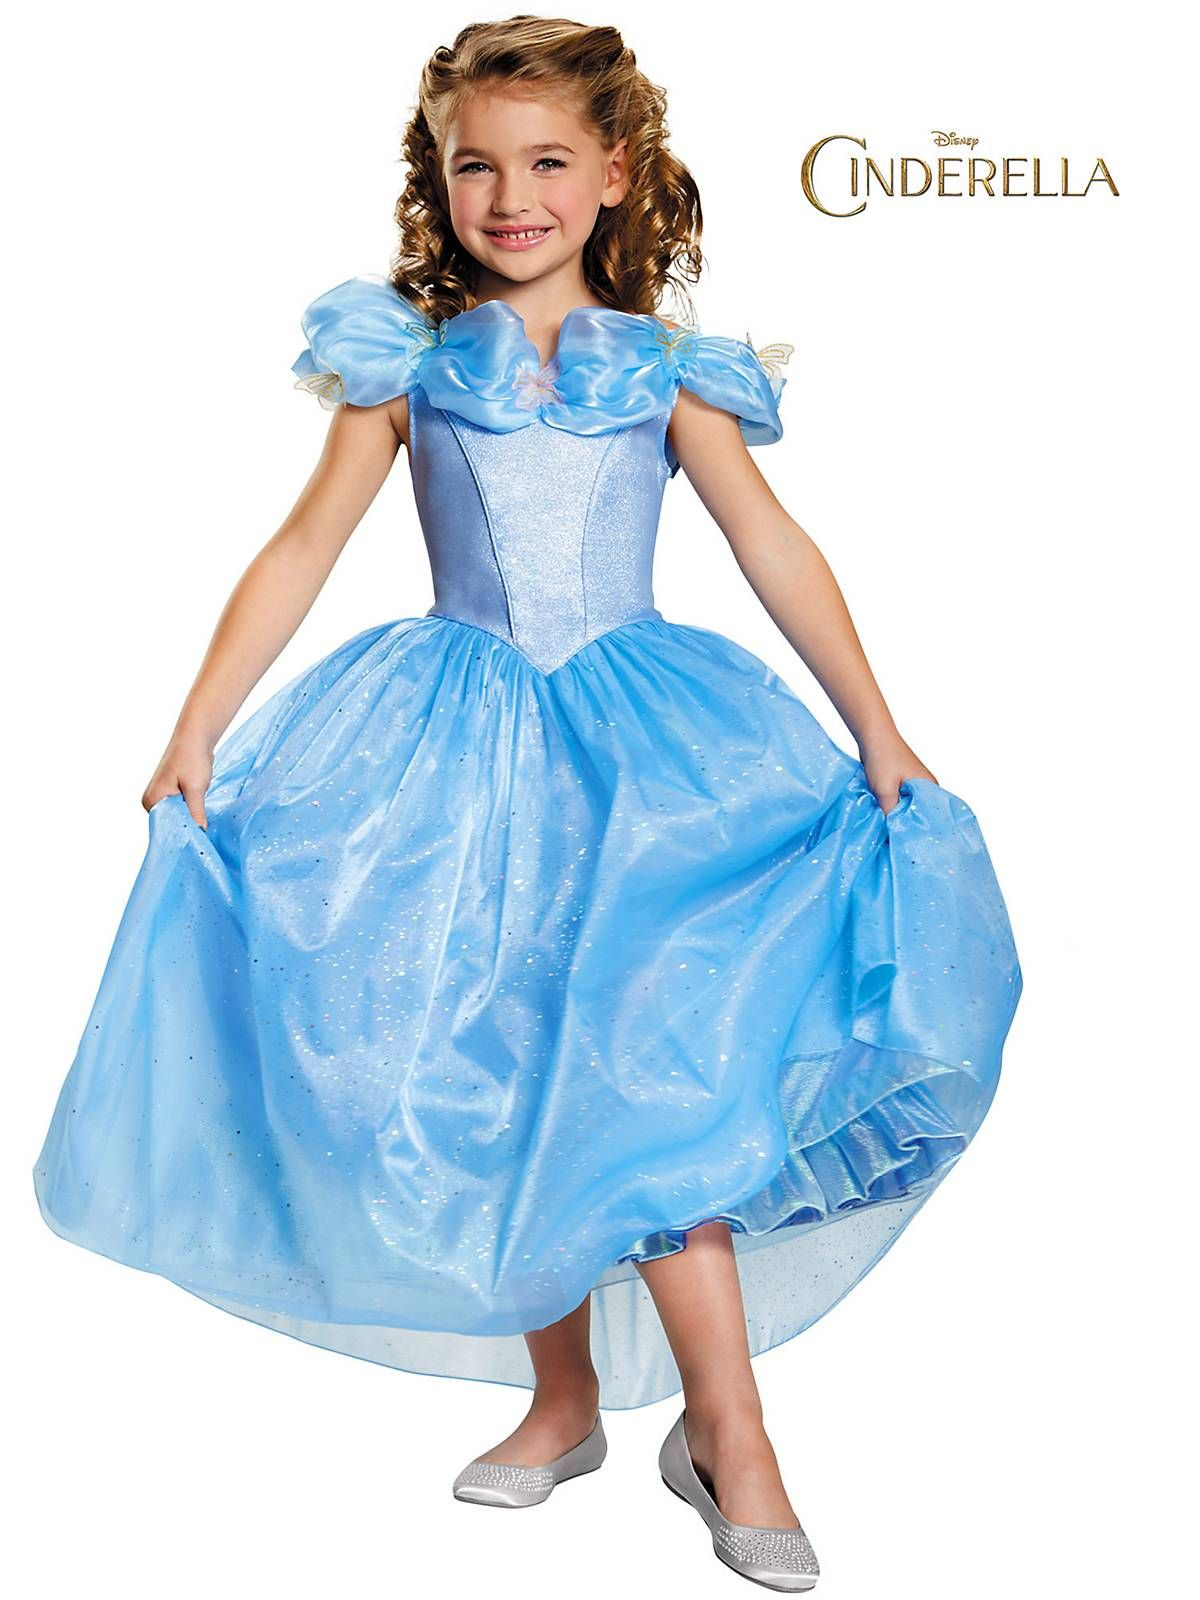 Be enchanting this Halloween and get the perfect look with this Girl's Cinderella Movie Prestige Costume